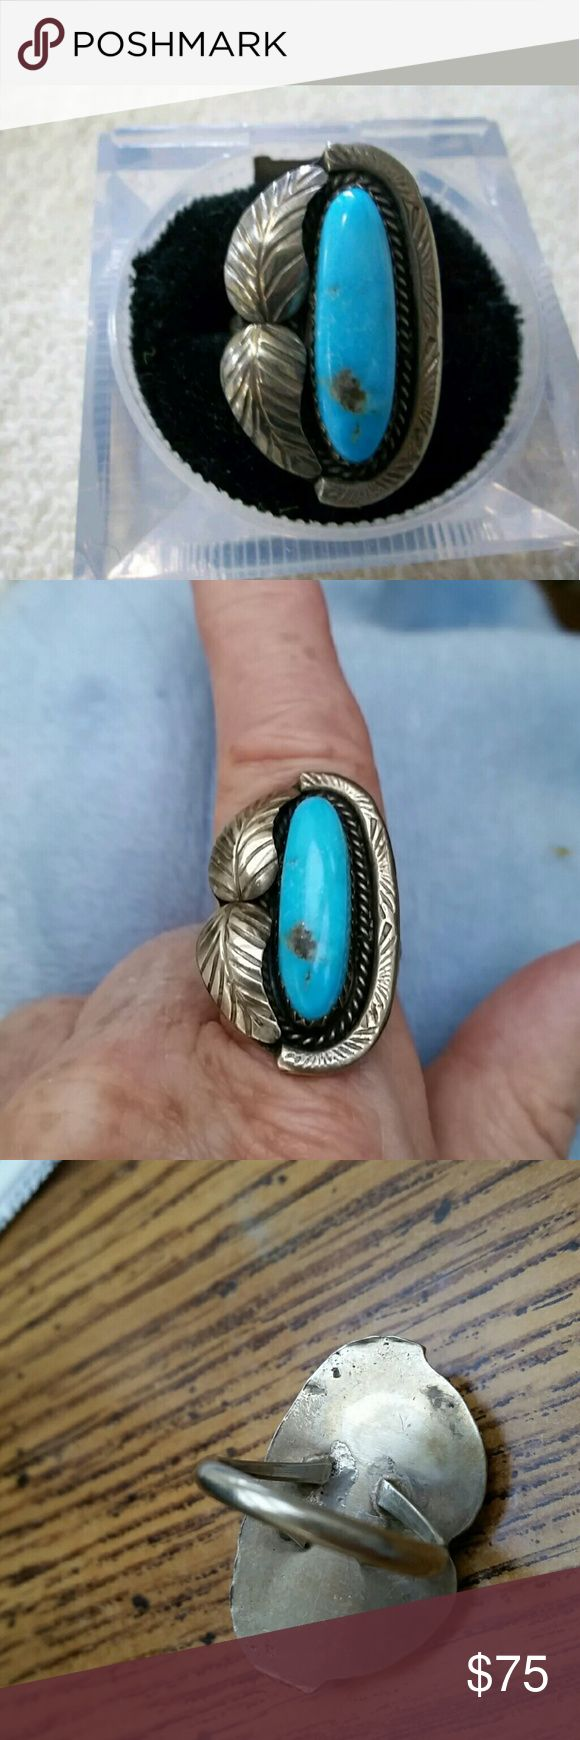 Vintage Sterling Silver Turquoise Ring Sz 7 Beautiful authentic turquoise set in solid sterling silver ring. This ring test positive for Sterling.  It is not marked which is commonplace for older pieces. Vintage  Jewelry Rings